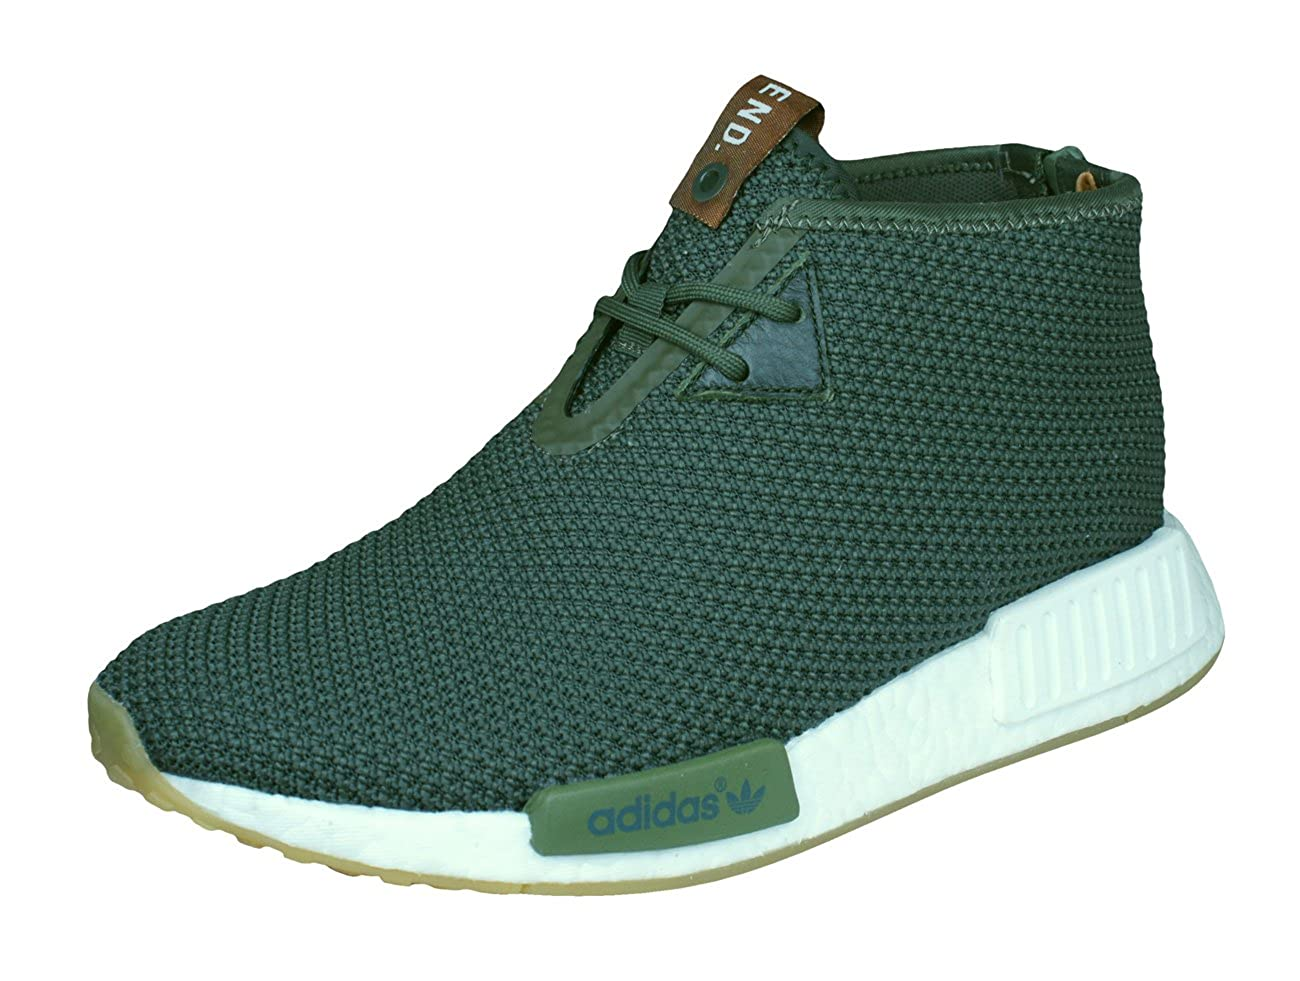 57d1d6884bf adidas NMD C1  End X Consortium  - BB5993 -  Amazon.co.uk  Shoes   Bags